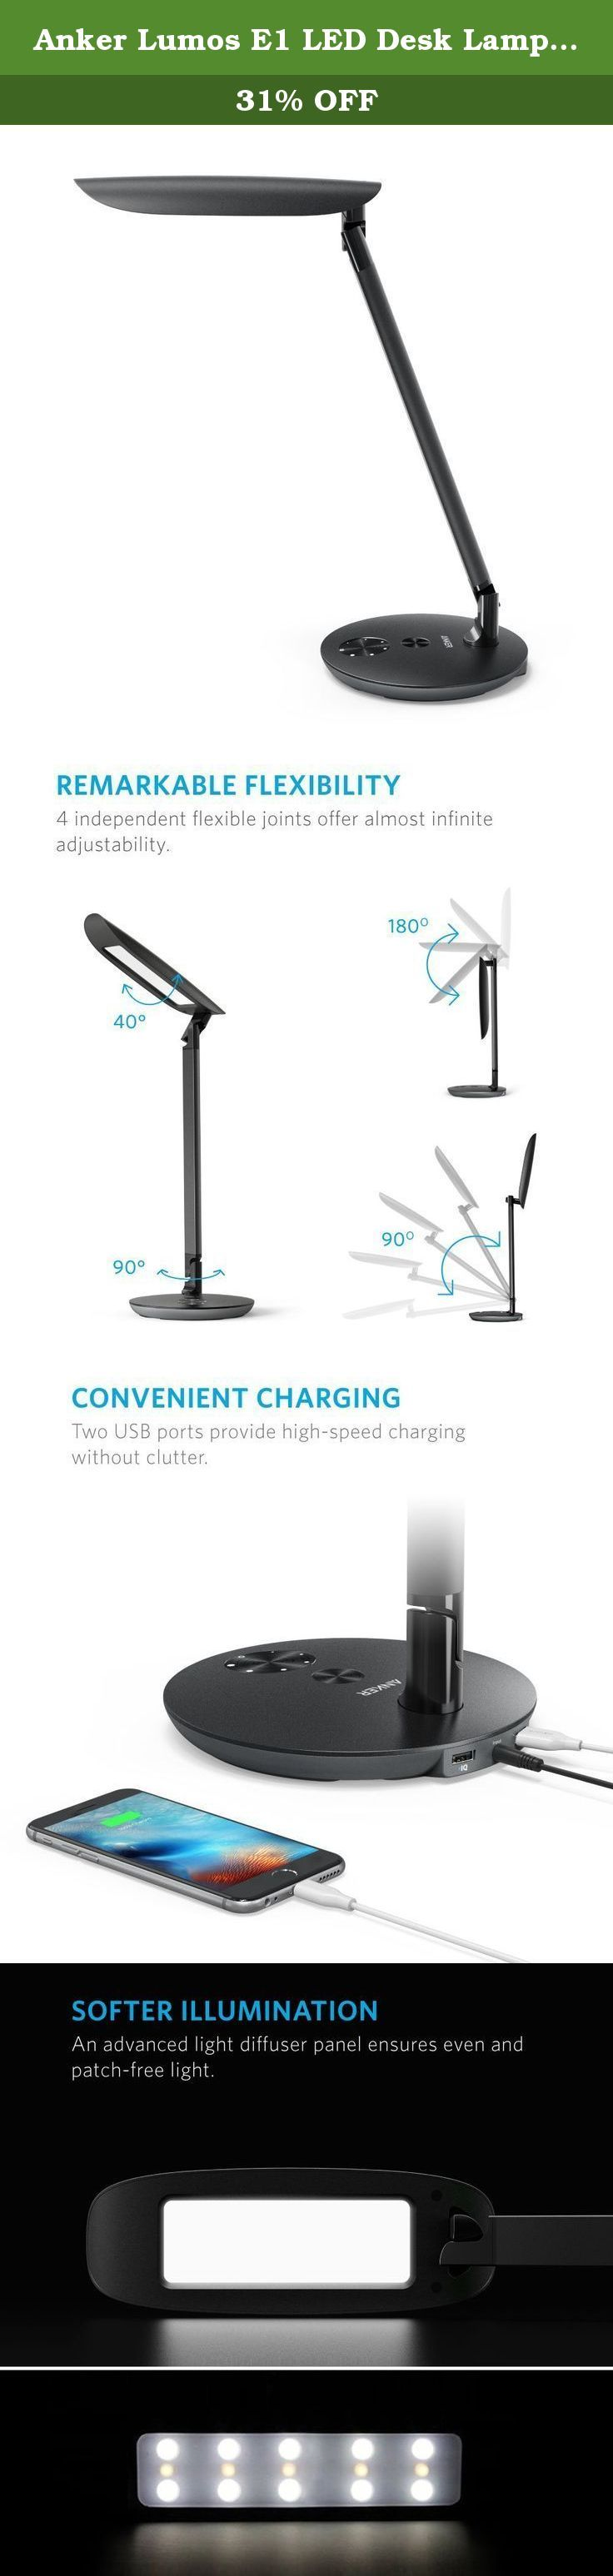 Anker Lumos E1 LED Desk Lamp, Dimmable Table Lamp with 2 High-Speed USB Charging Ports, Eye-Care Tech, Premium Material, Touch-Sensitive Control Panel, 6-Level Dimmer, 5 Lighting/ Color Modes. Lumos E1 The Premium Eco-Friendly LED Desk Lamp From ANKER, the Choice of 10 Million+ Happy Users • Industry-Leading Technology • 99% Positive Feedback Energy-Efficient Lighting Lumos E1 is built with power-saving LEDs that have a 50, 000-hour lifespan, allowing up to 20 years of use. Using 75% less...